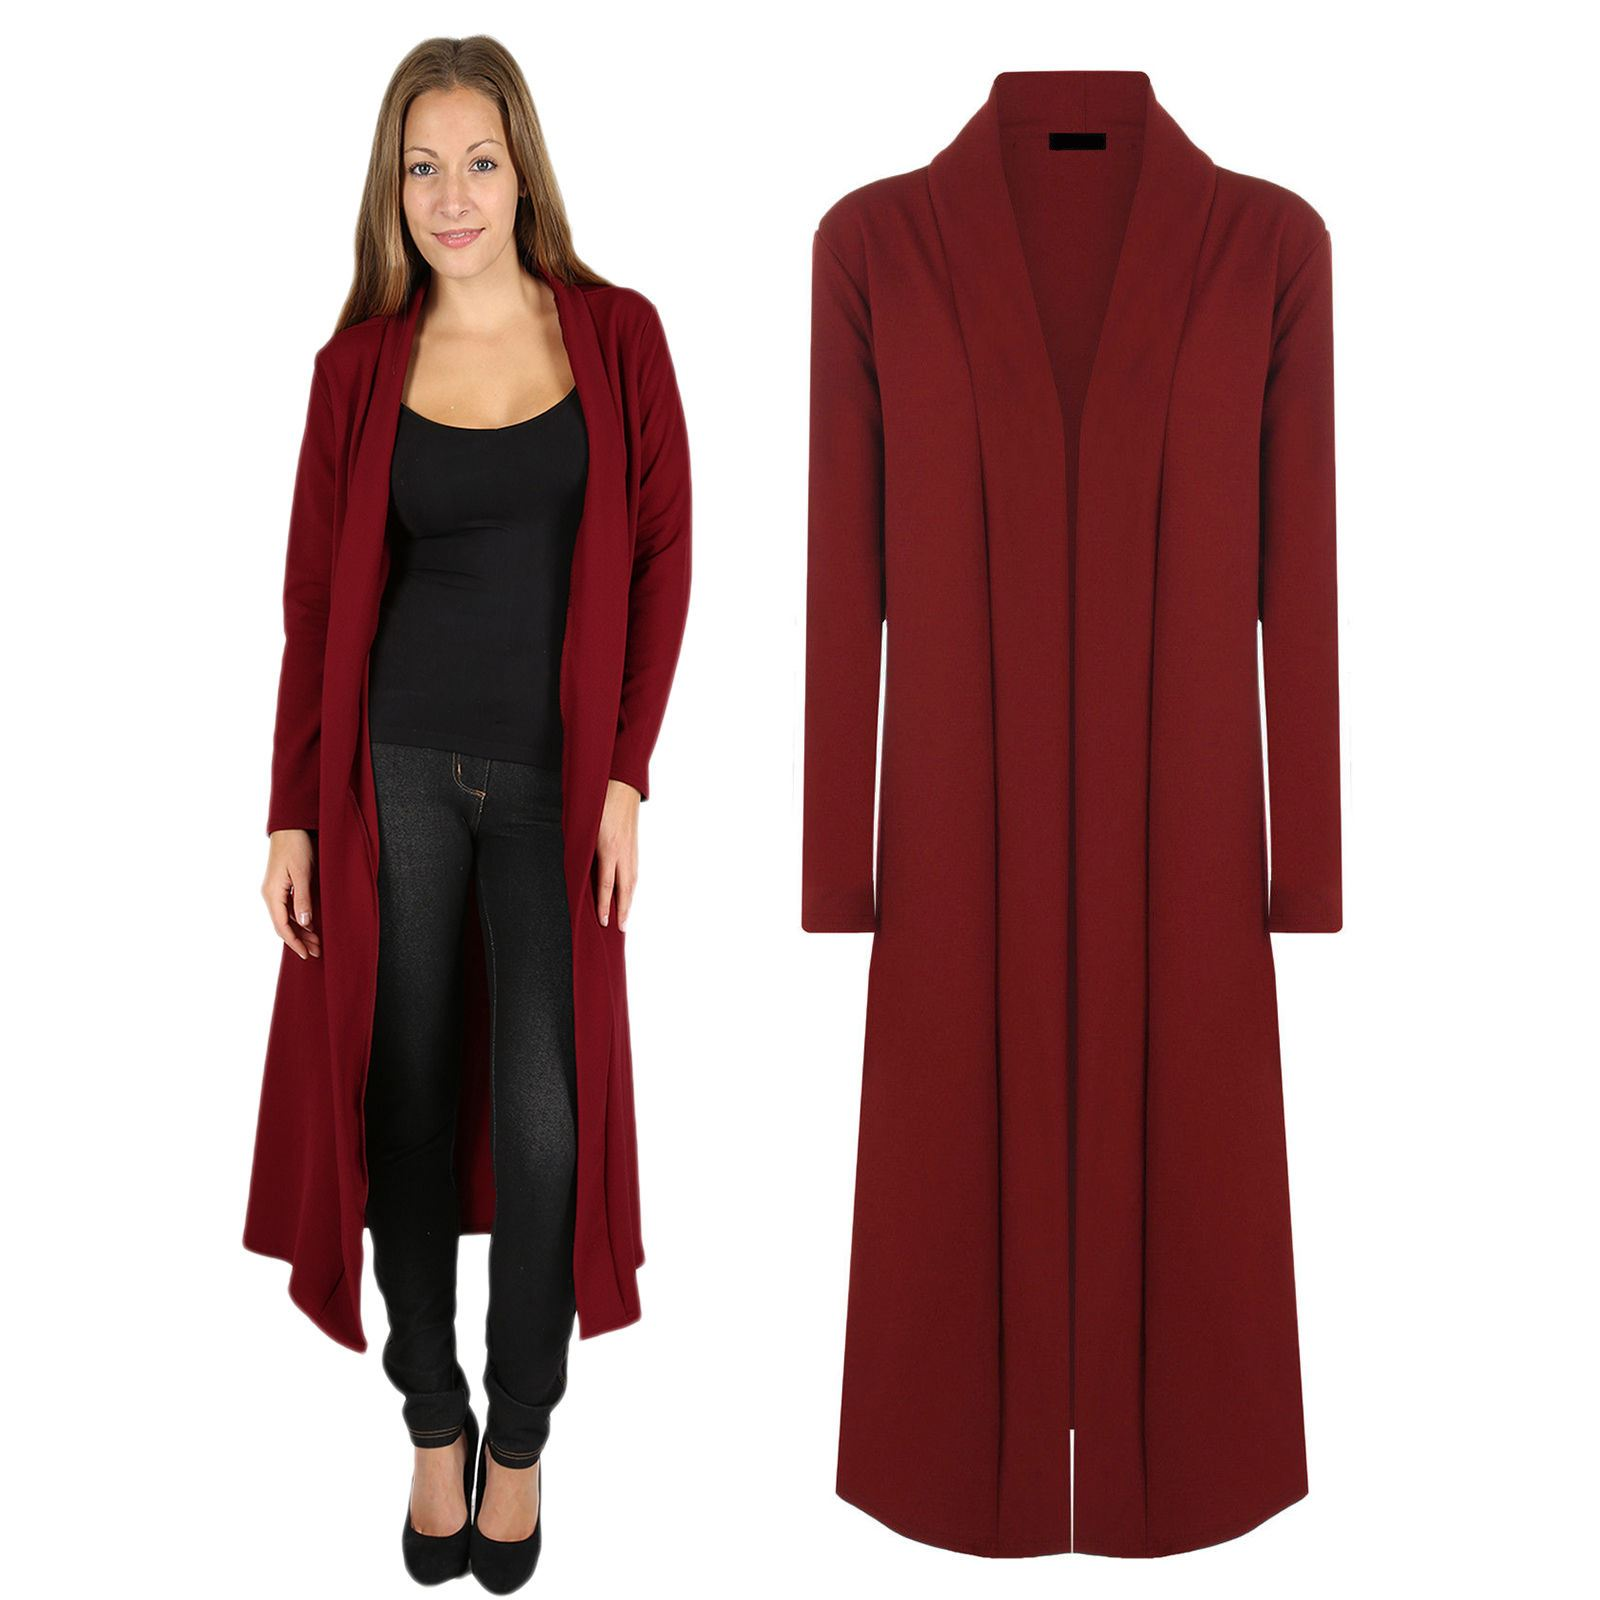 Womens Long Red Cardigan | Tulips Clothing